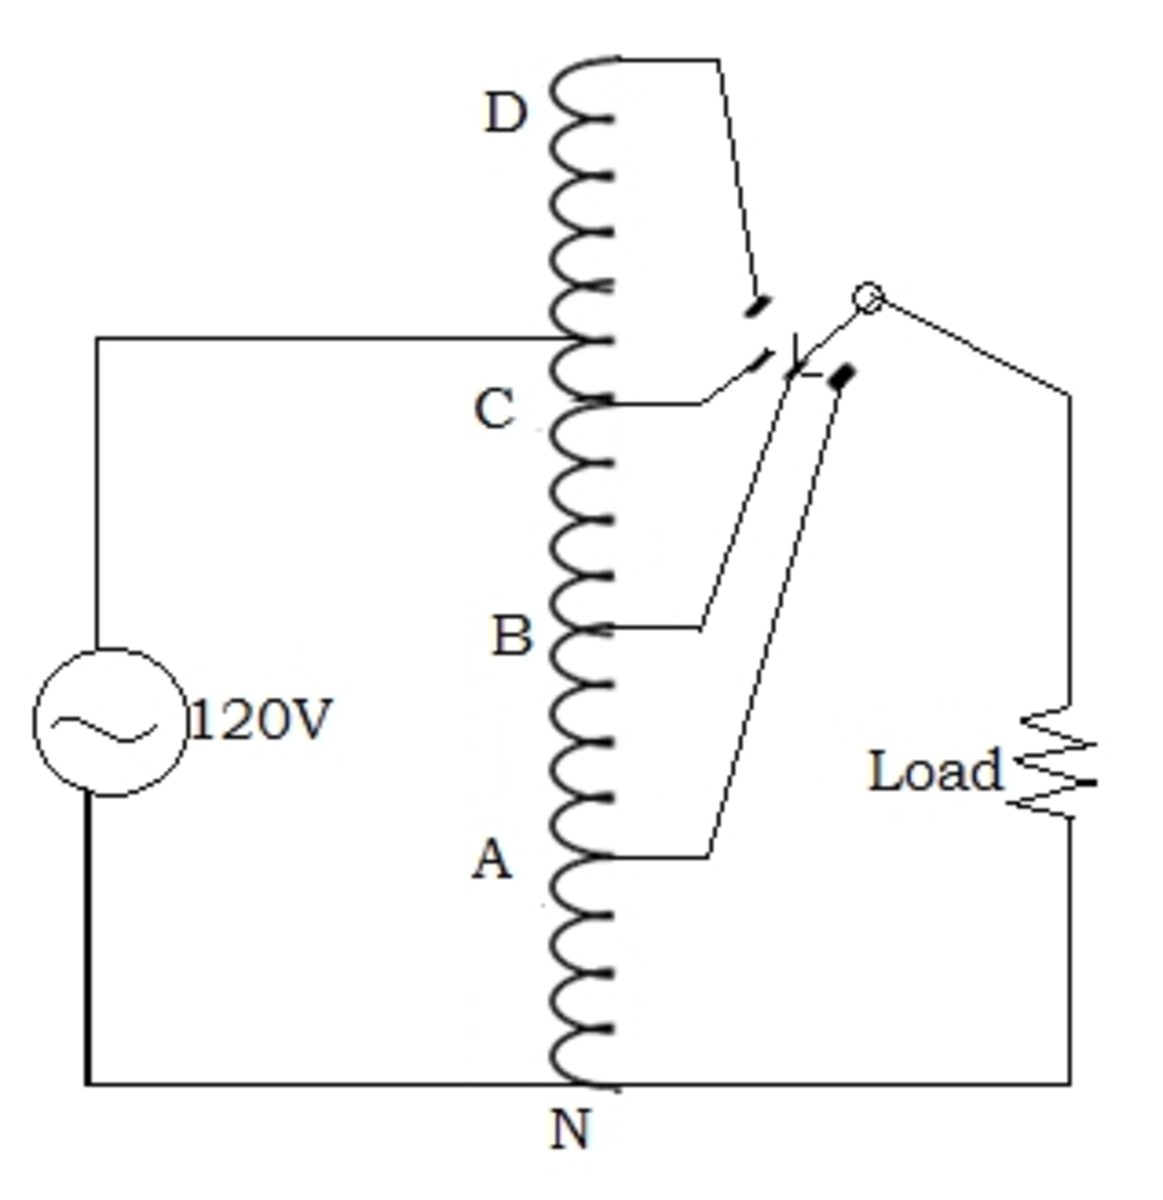 How does an Autotransformer work?